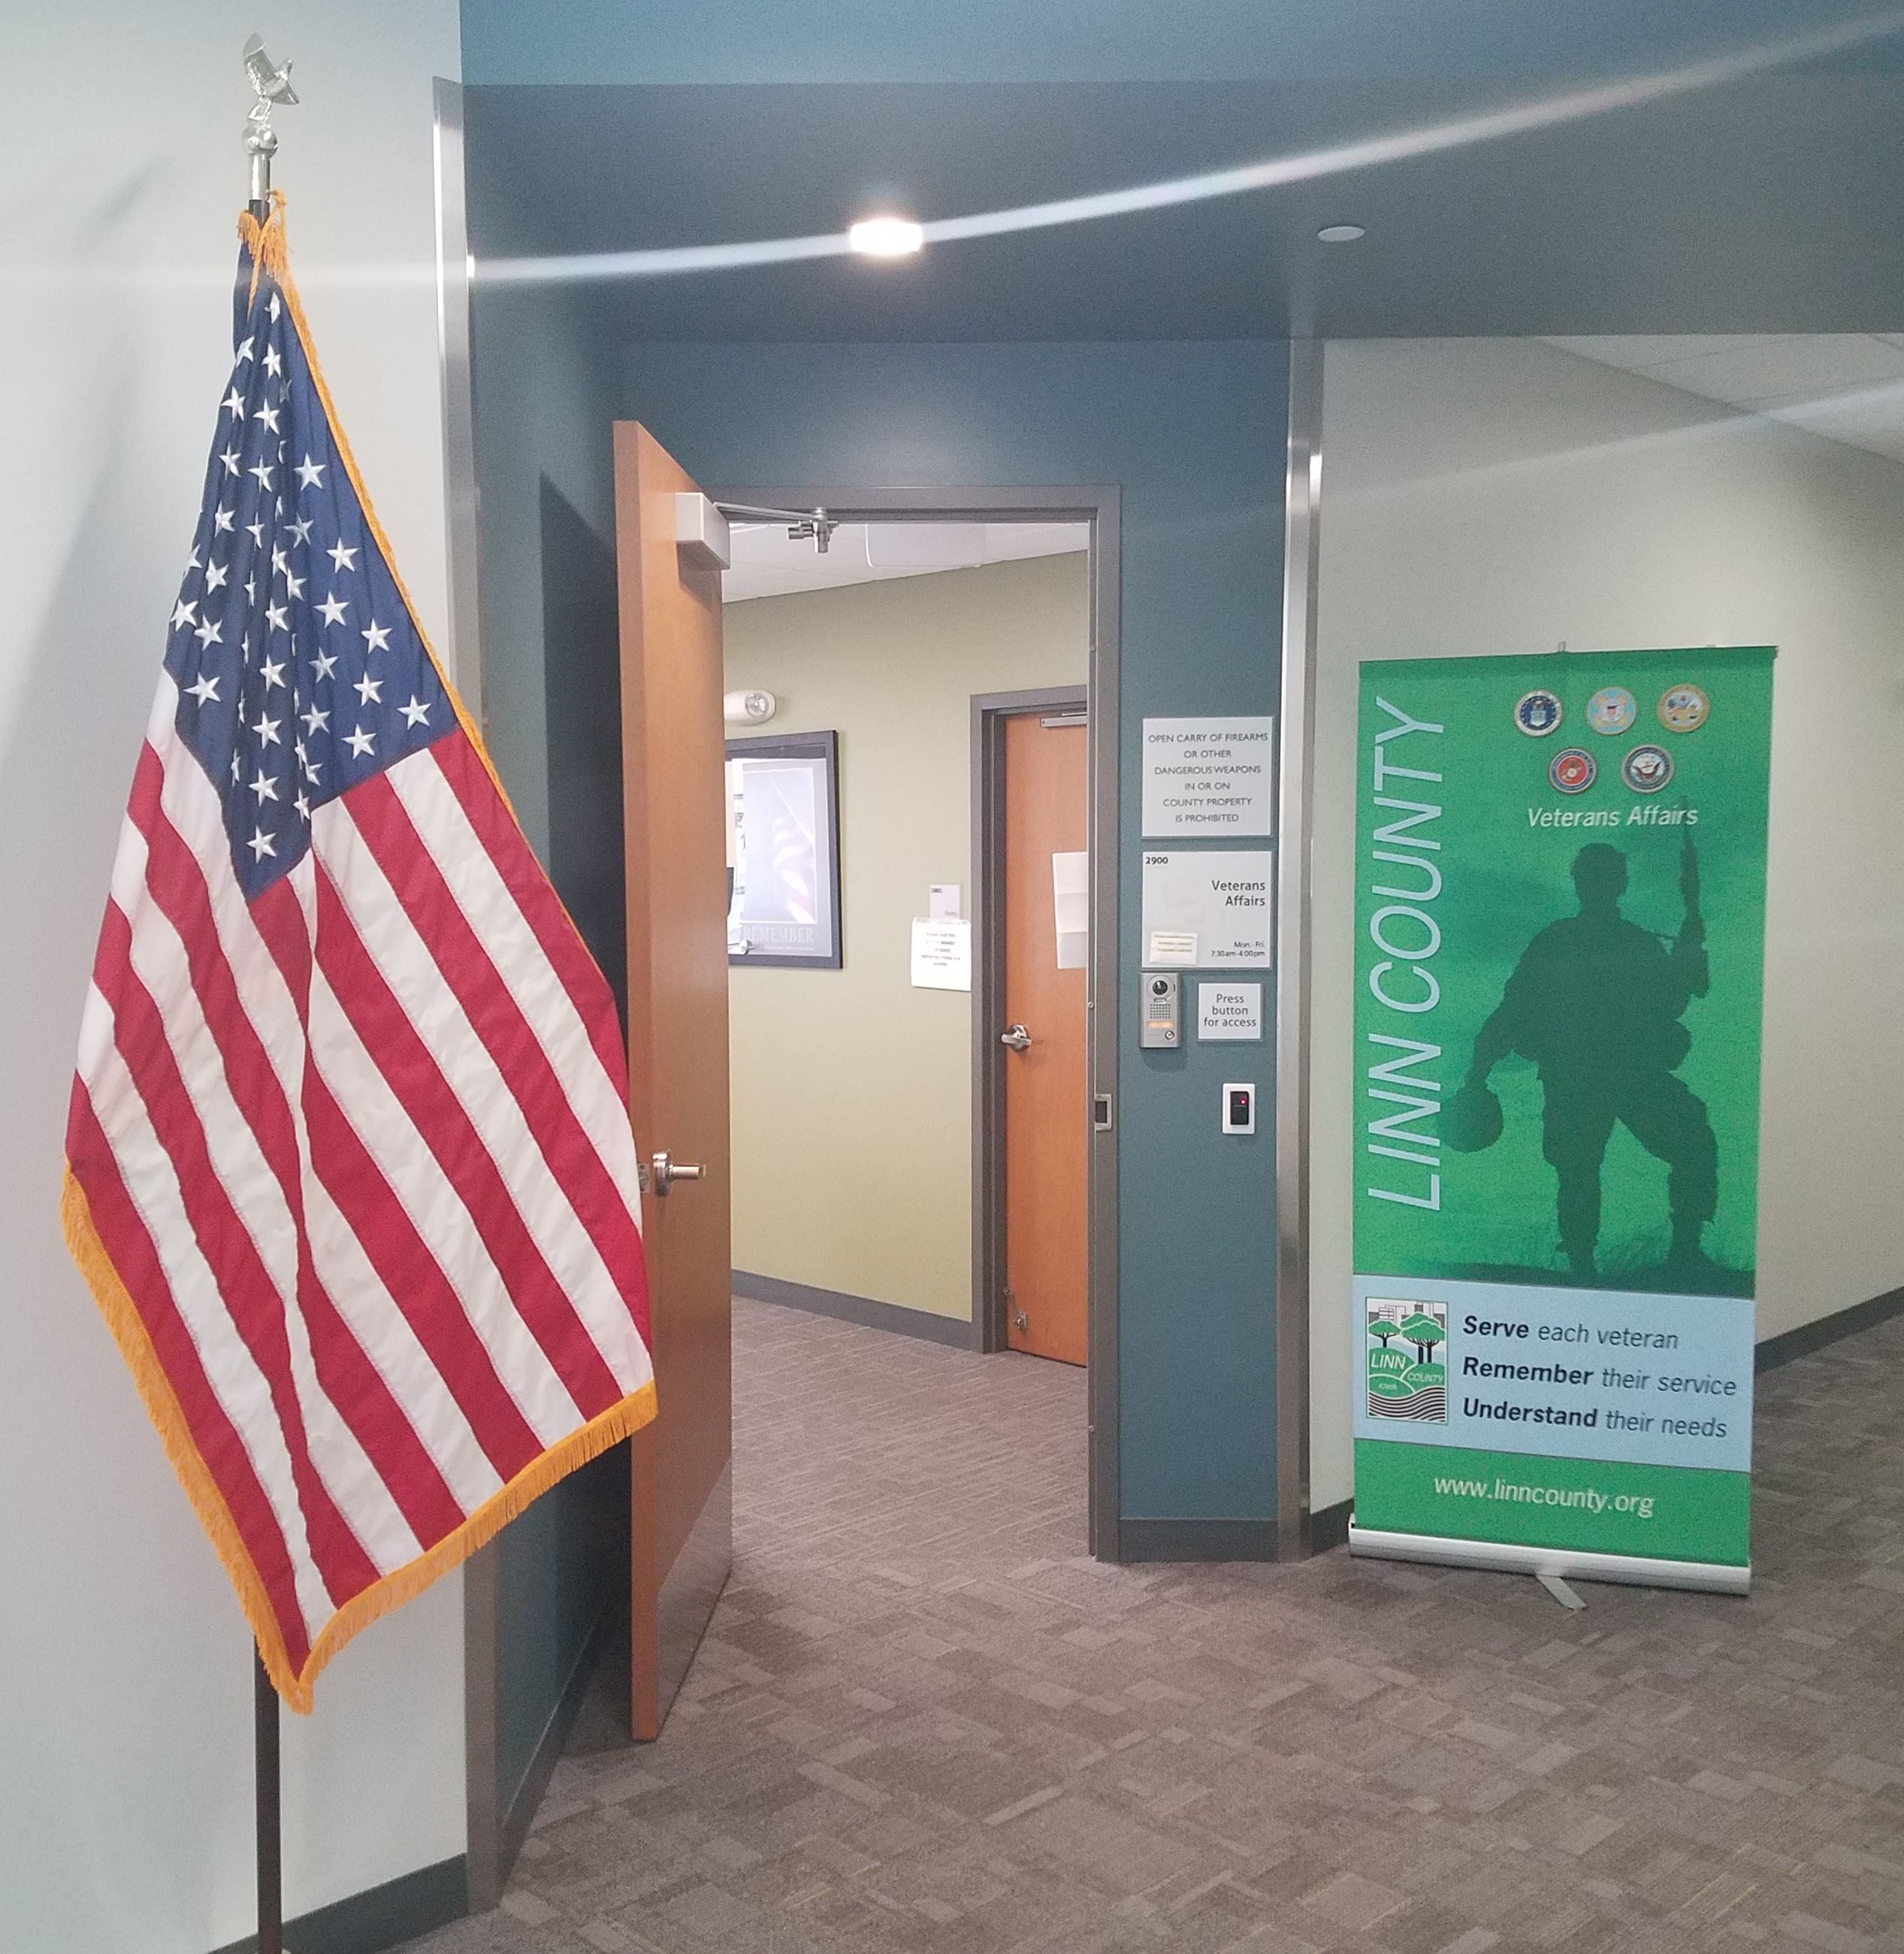 Linn County Veterans Affairs